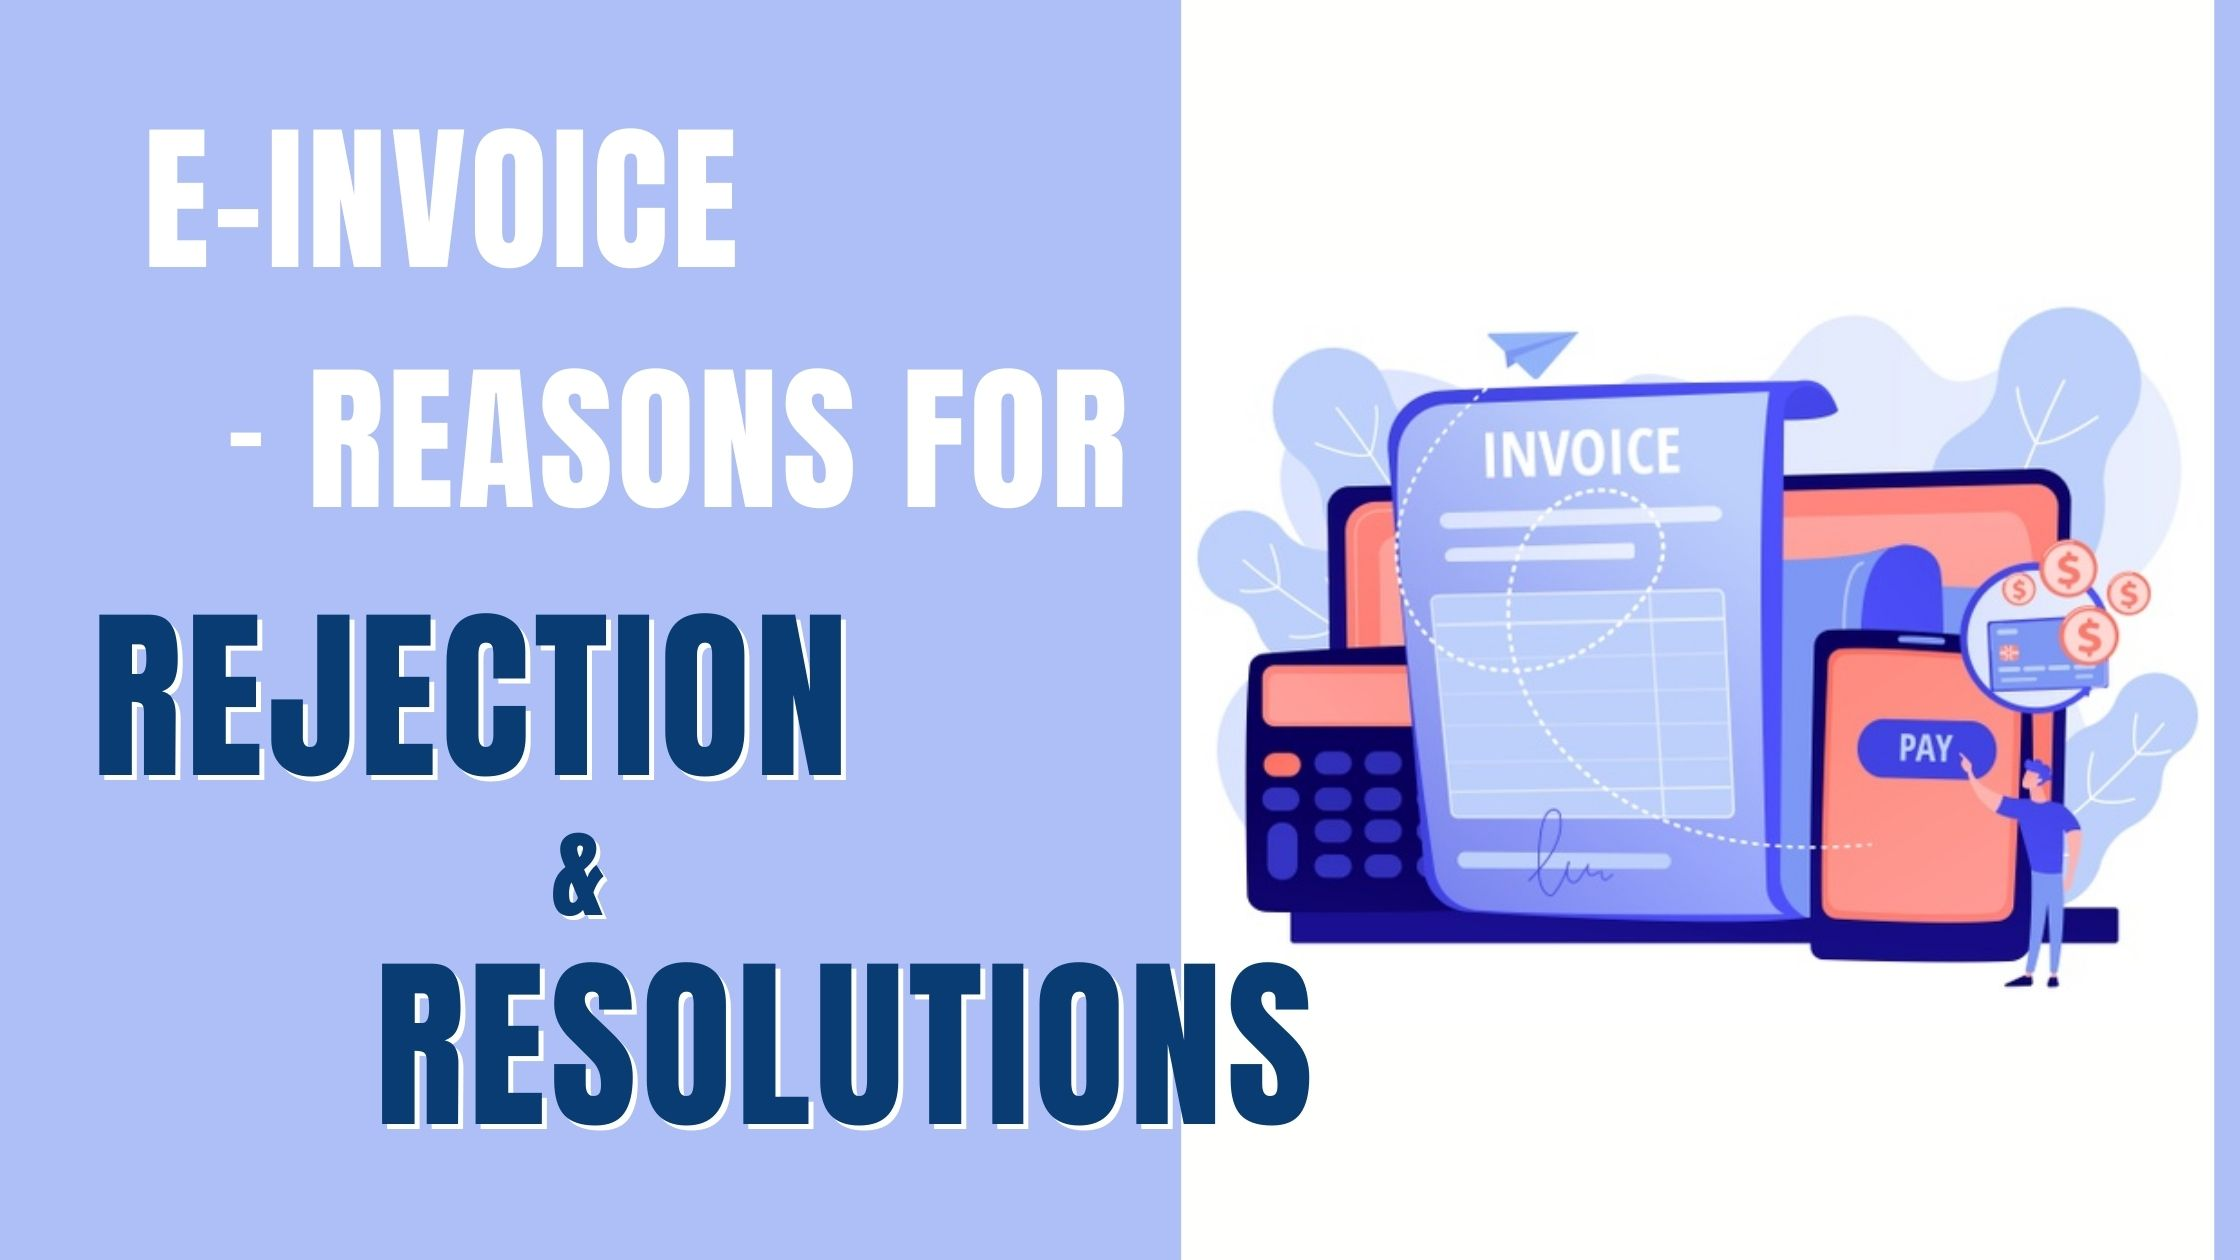 E-invoice rejection & resolutions